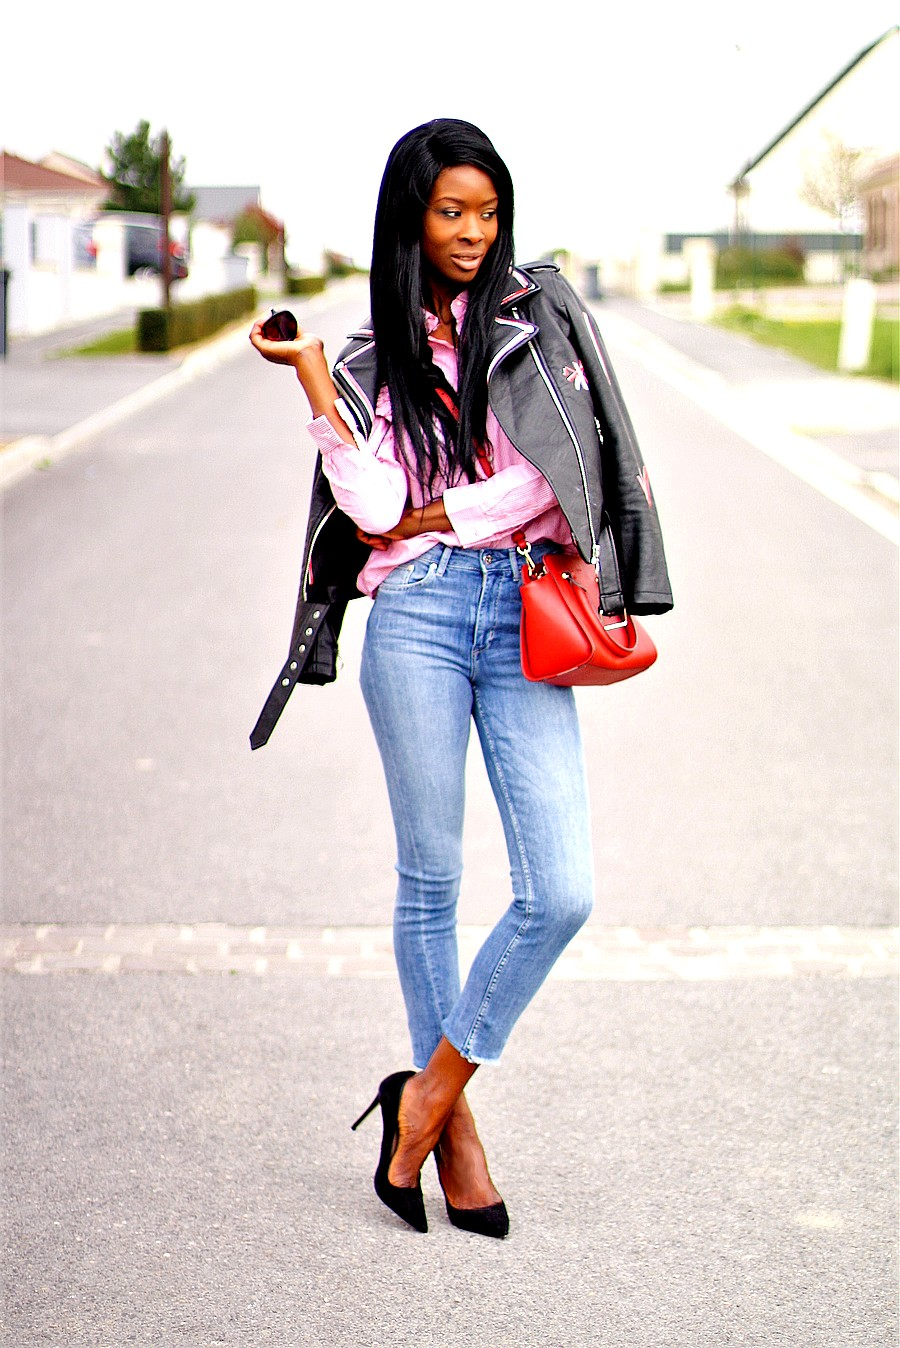 perfecto-imprime-chemise-rayee-jeans-slim-sac-rouge